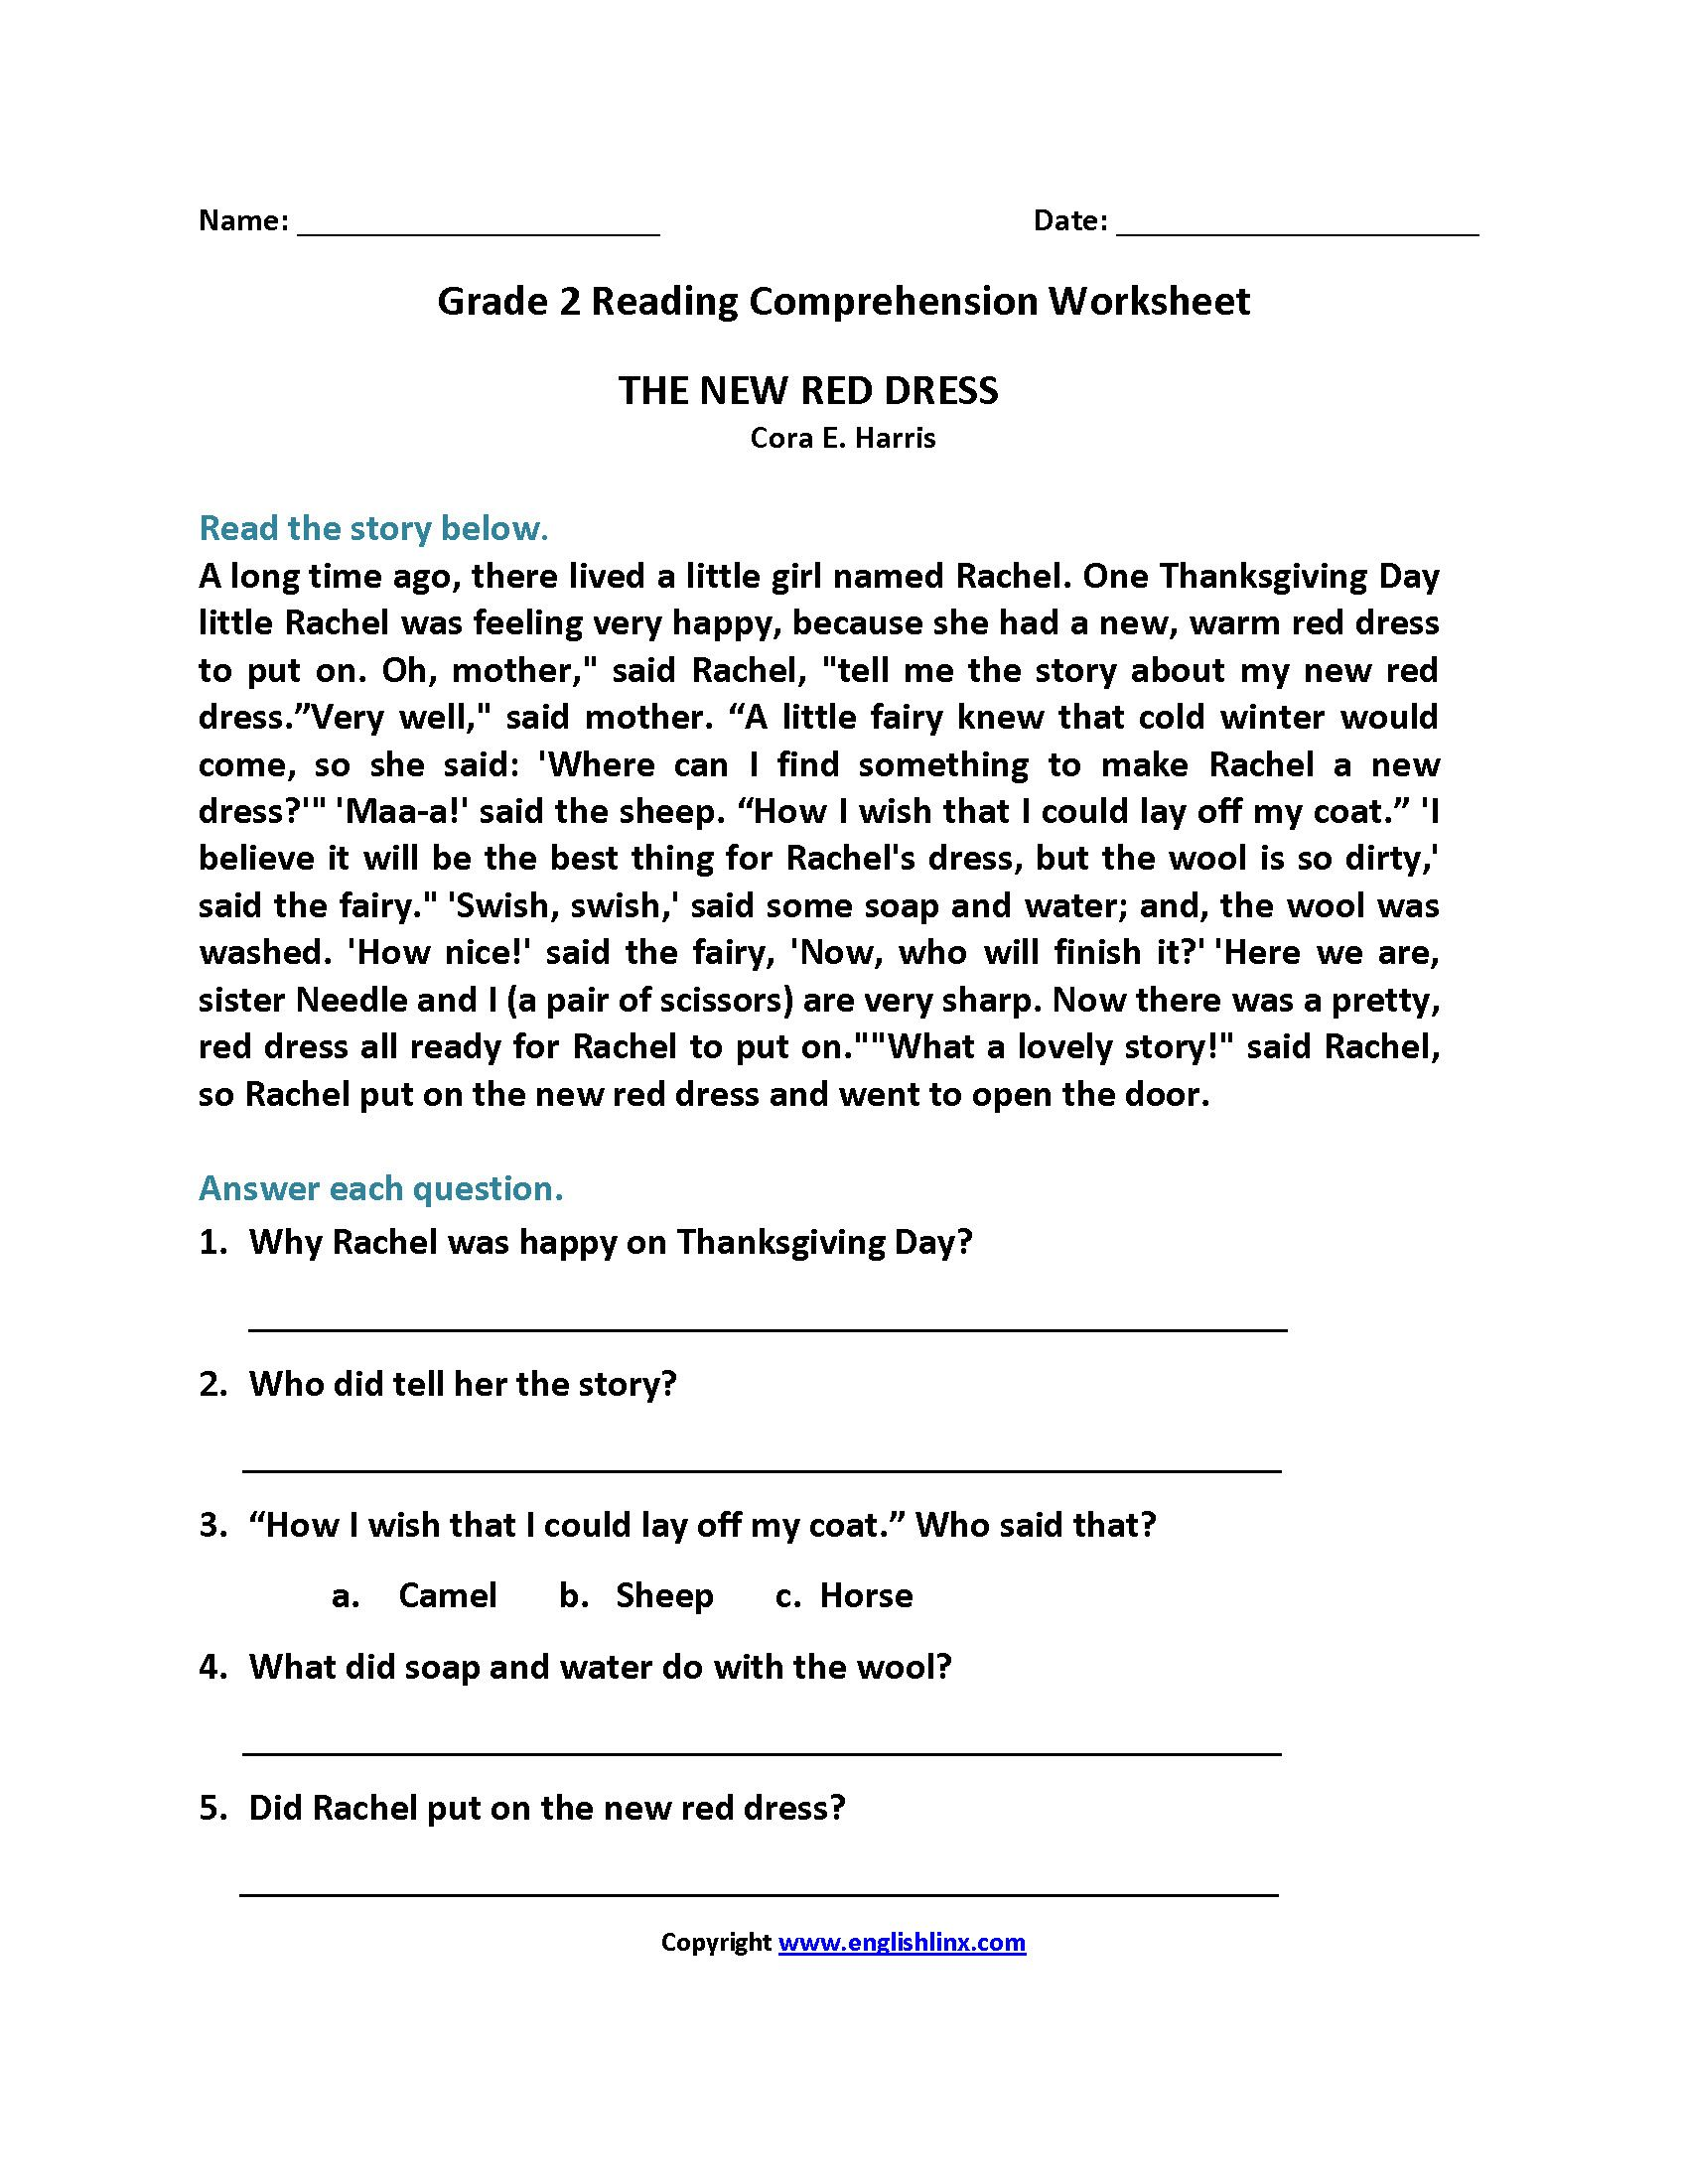 Pin By Leen Makhlouf On Reading Comprehension Worksheets Comprehension Worksheets Reading Comprehension Worksheets Reading Comprehension [ 2200 x 1700 Pixel ]